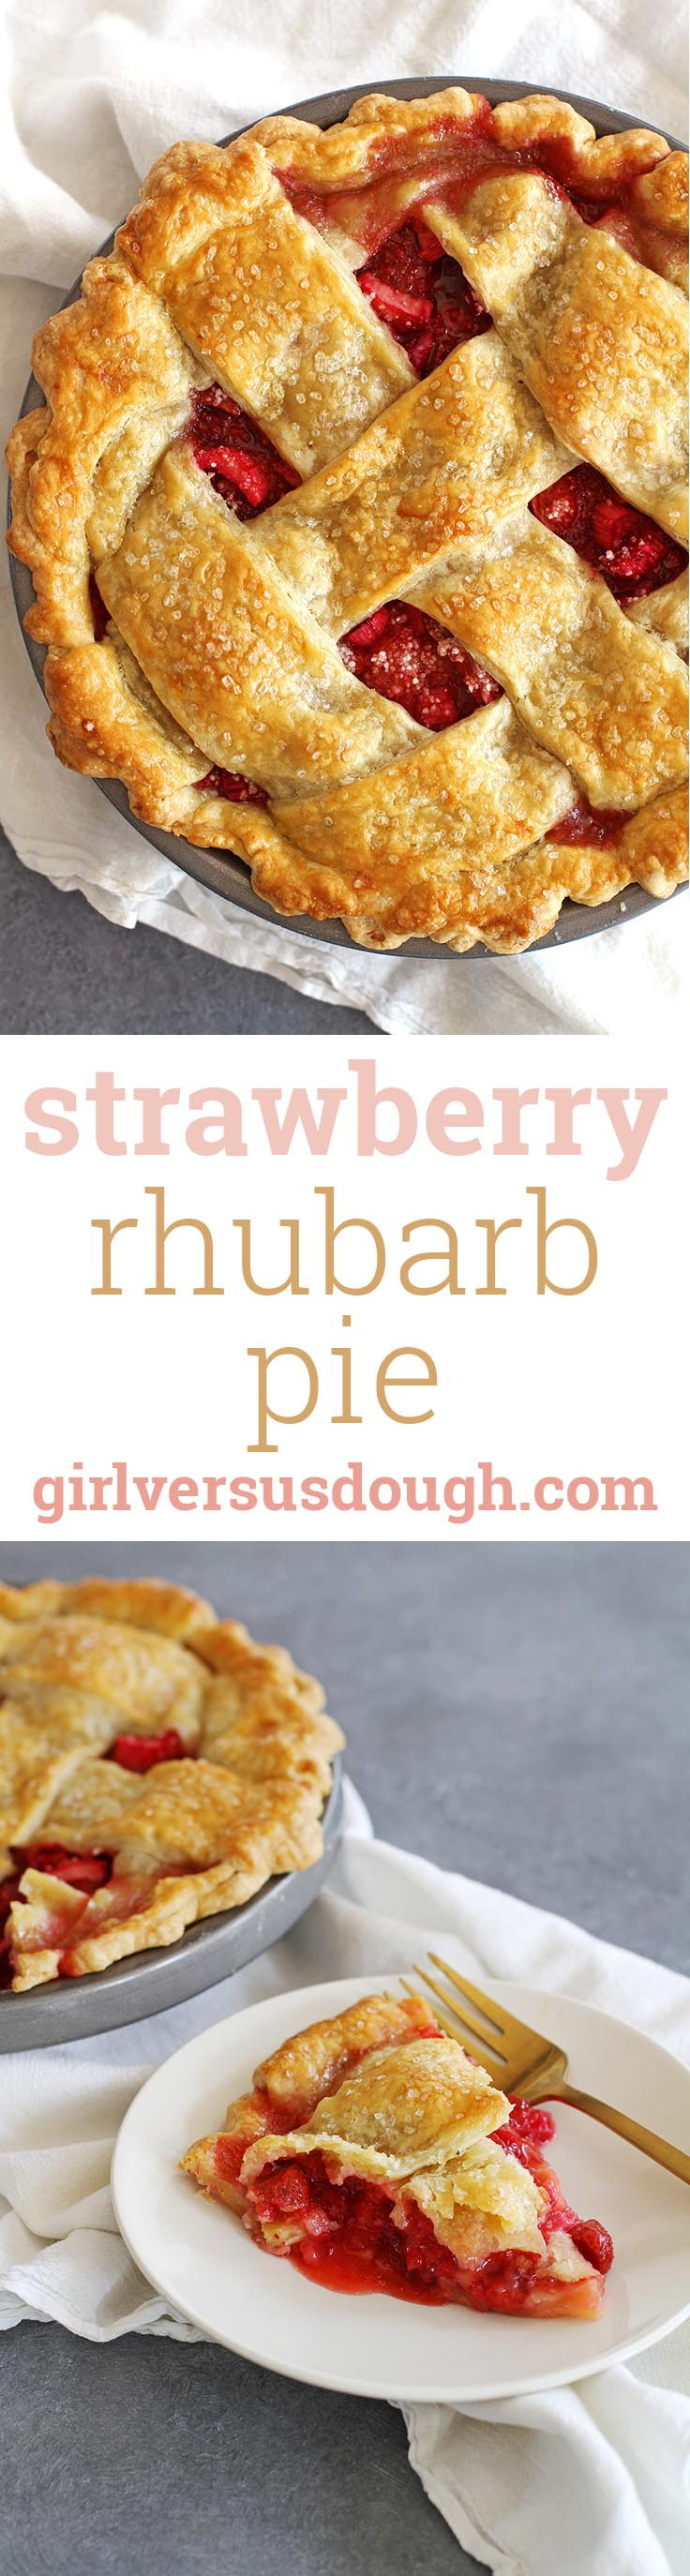 Strawberry Rhubarb Pie -- Tangy, tart, sweet strawberry rhubarb filling with a sugar-sparkled all-butter lattice pie crust. girlversusdough.com @girlversusdough